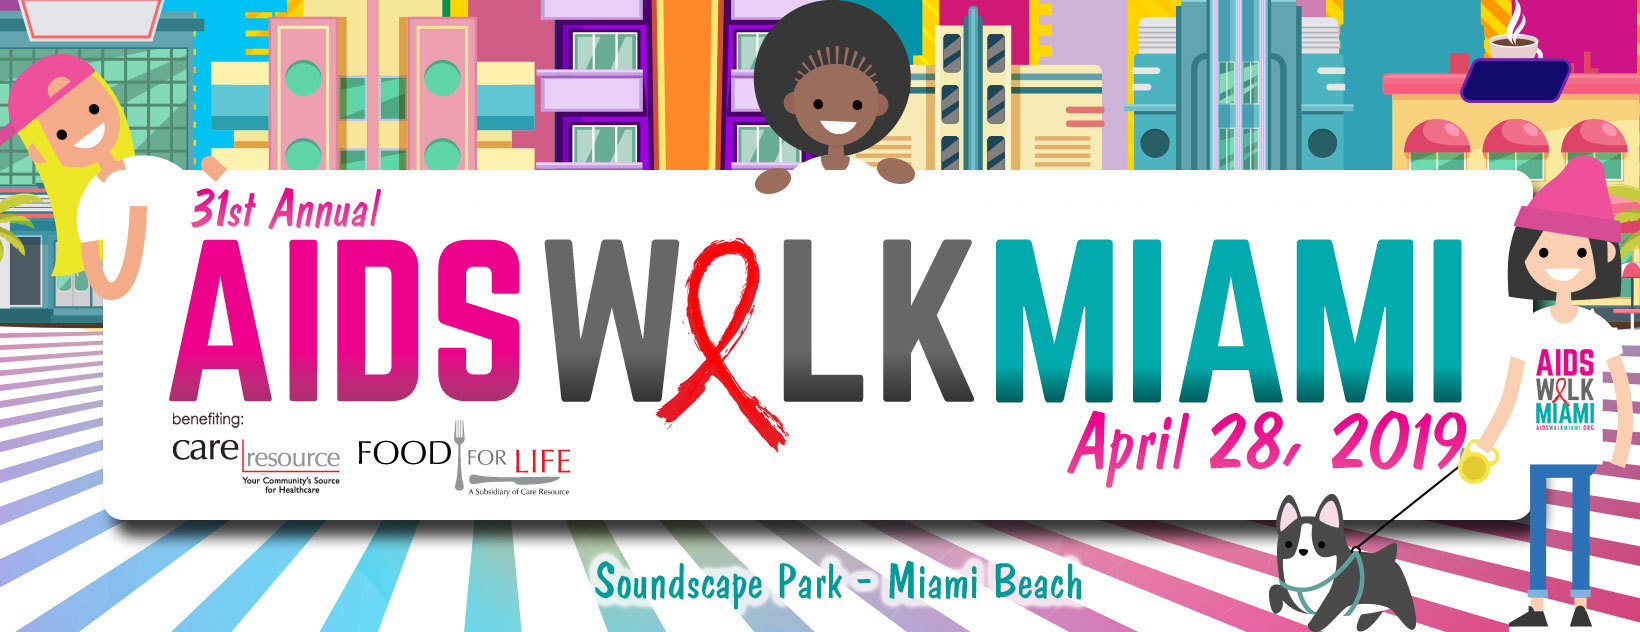 AIDS Walk Miami 2019